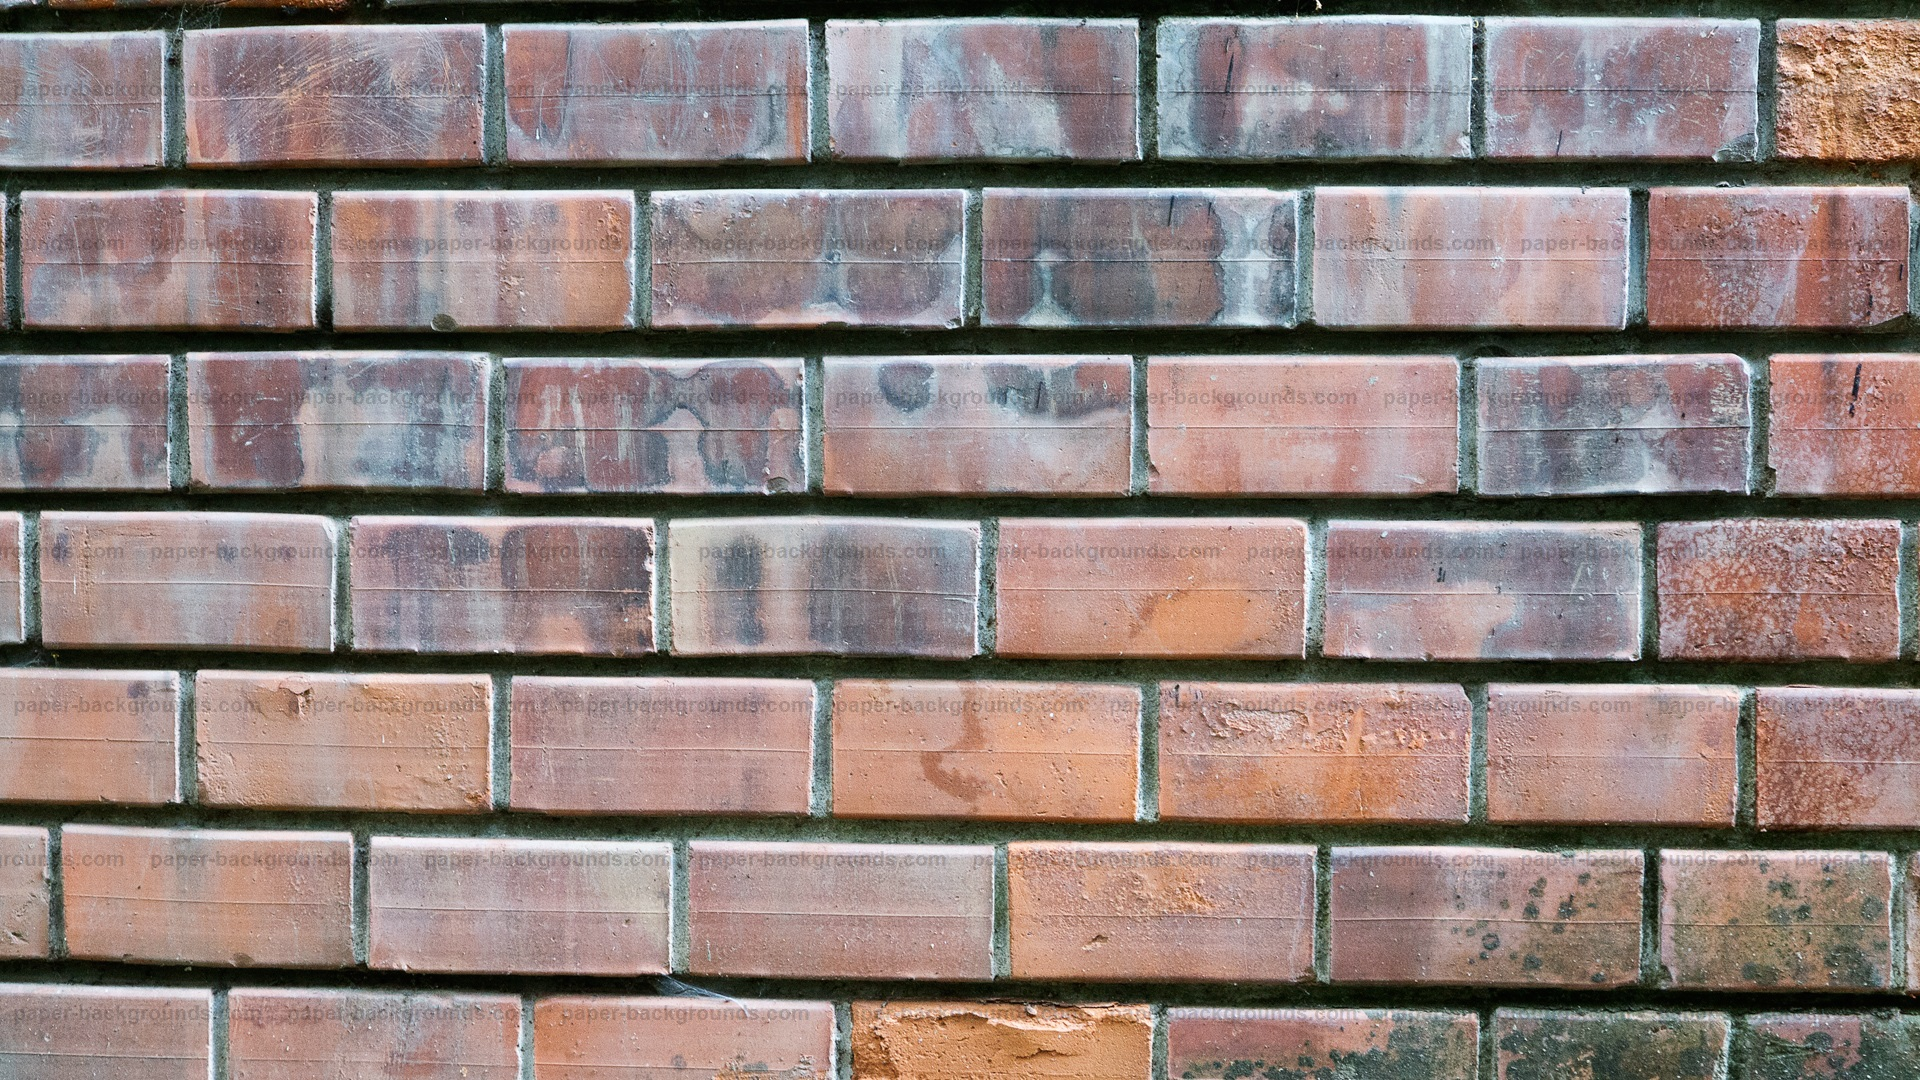 Grunge Bricks Wall Texture HD